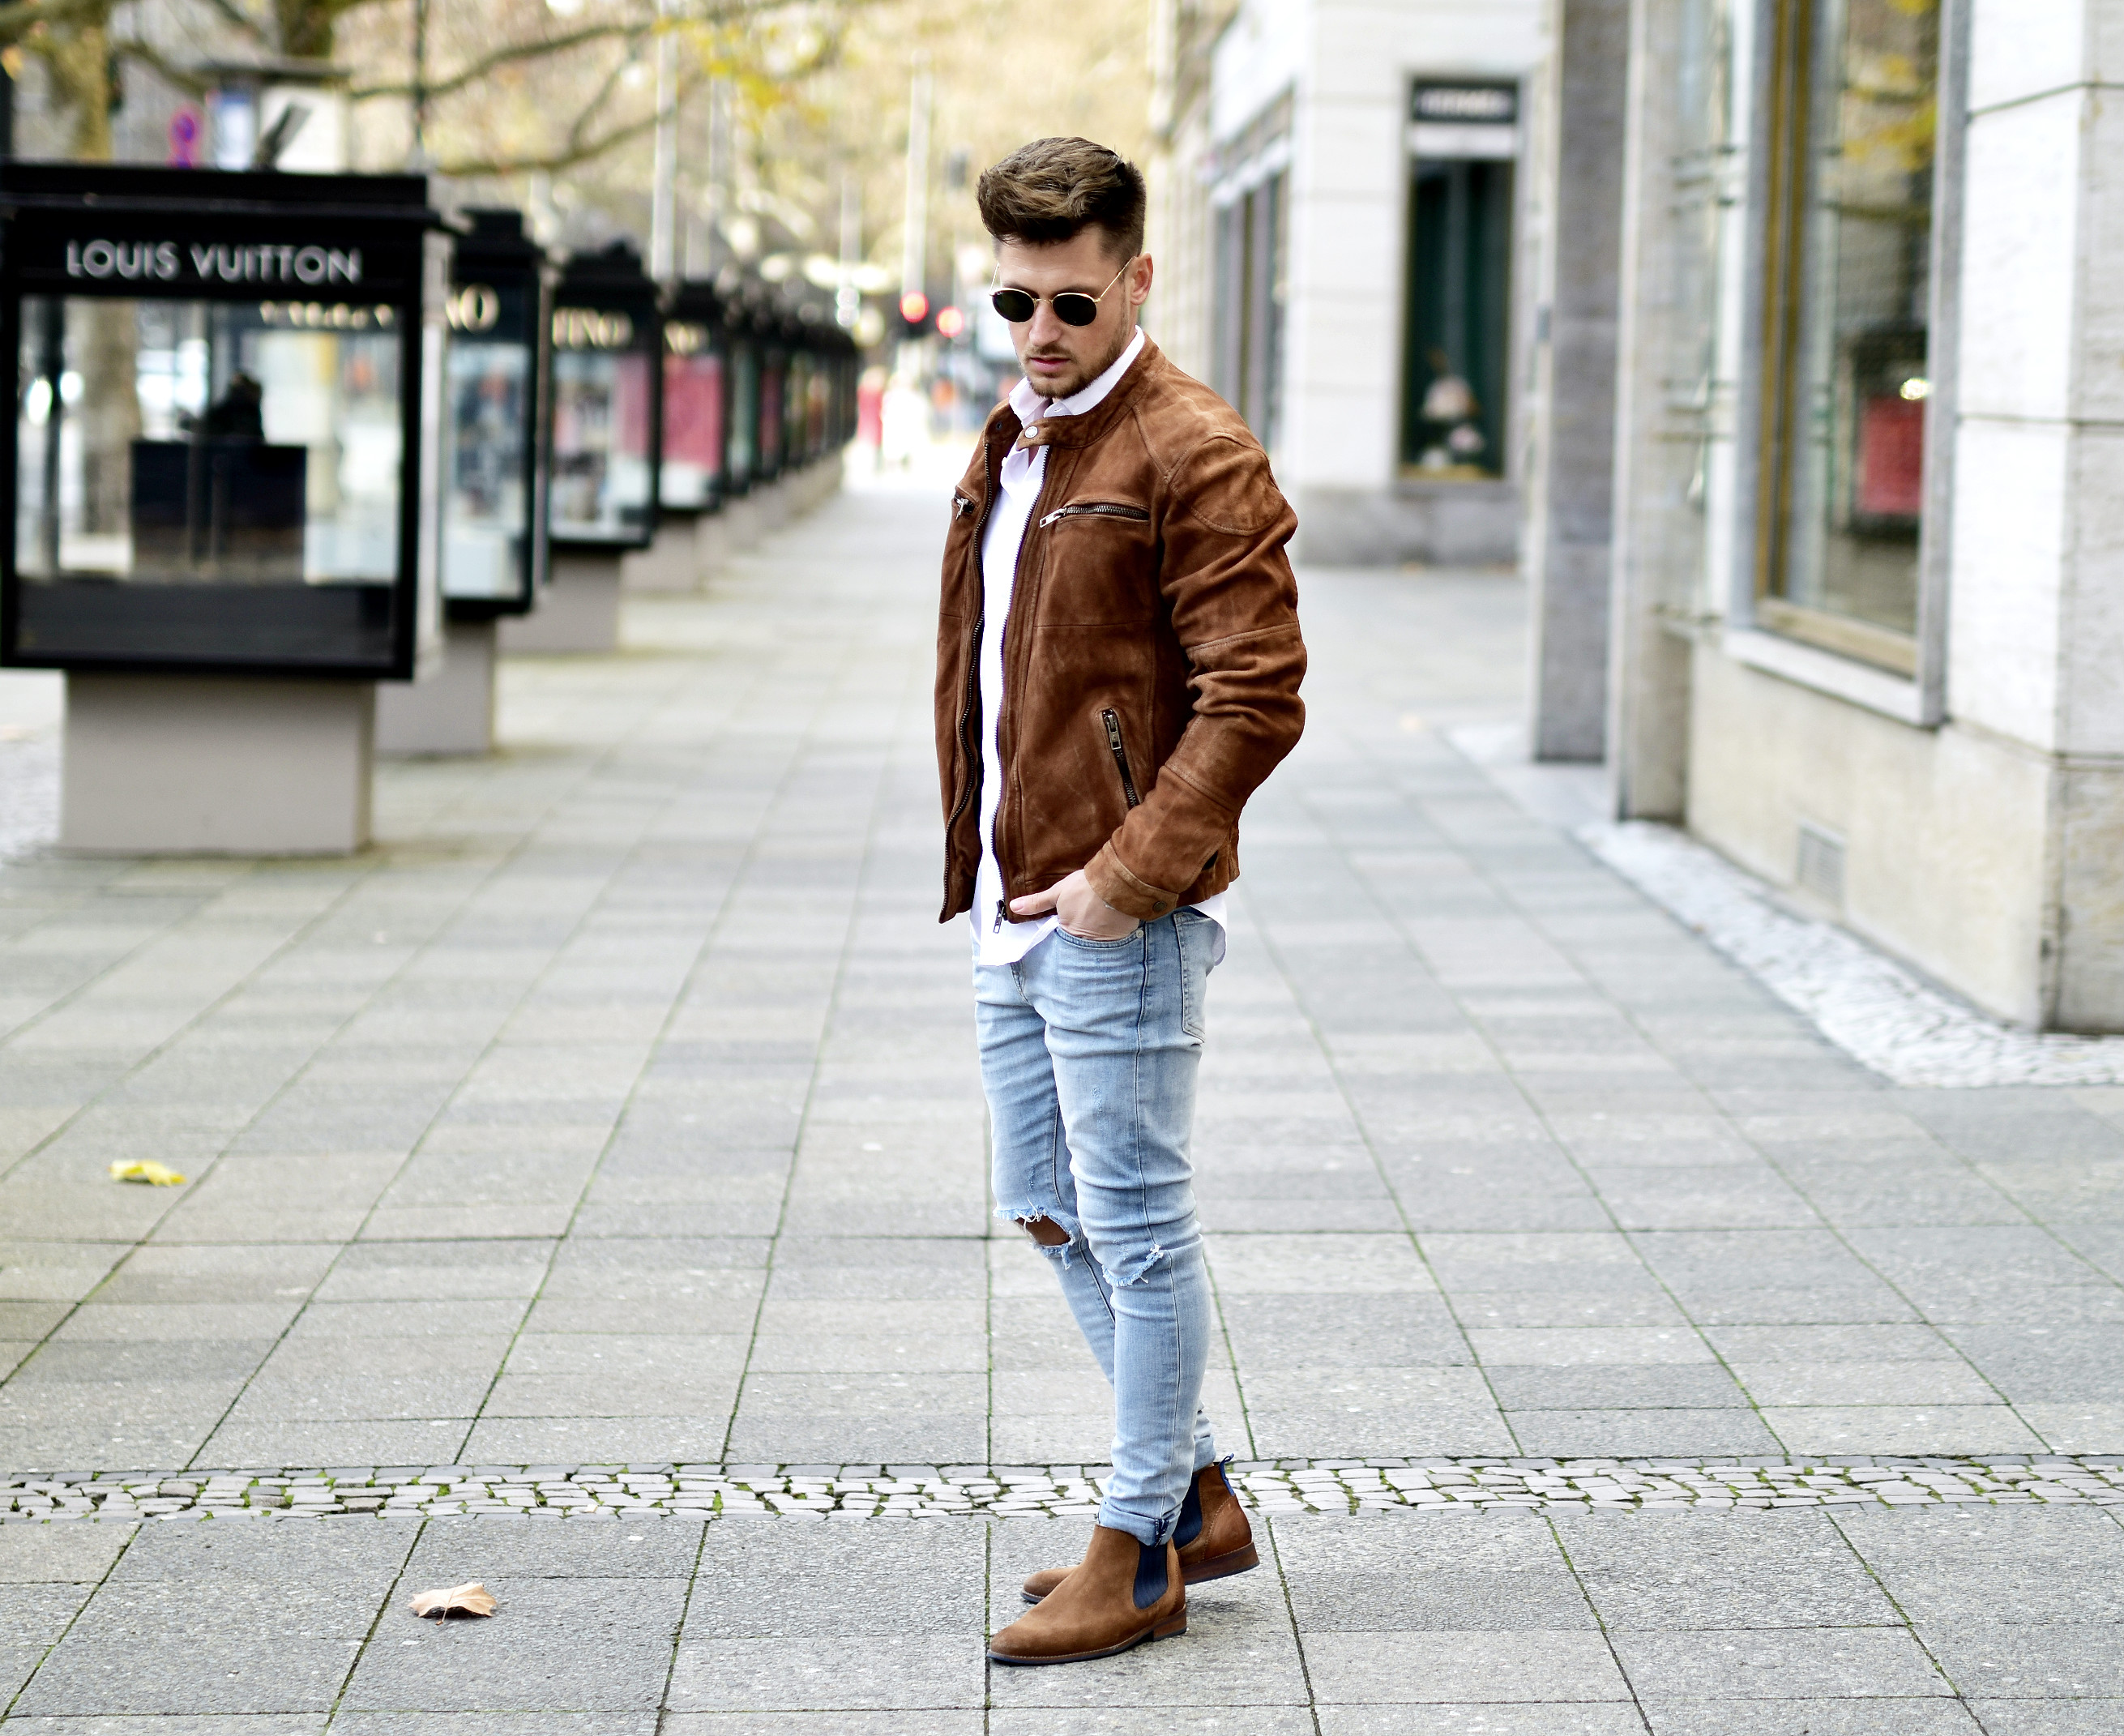 tommeezjerry-styleblog-maennerblog-maenner-modeblog-berlin-berlinblog-maennermodeblog-outfit-lederjacke-beedgy-movado-chelsea-boots-1